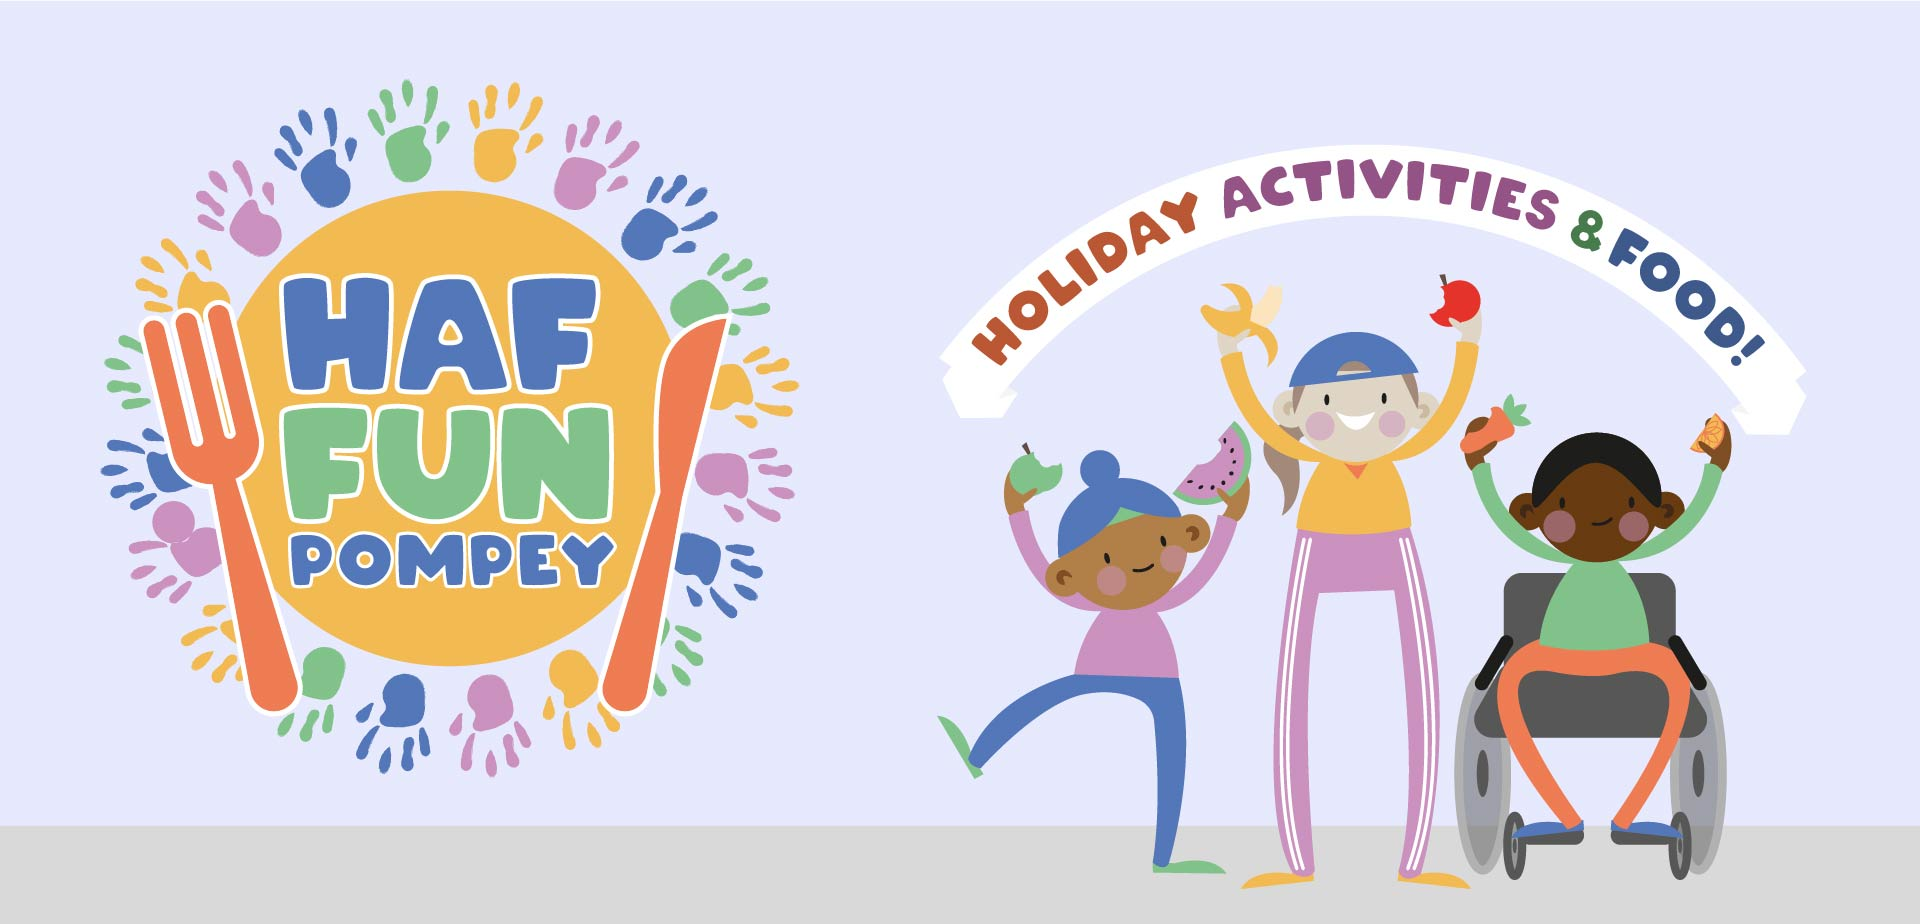 Holiday, activities & food banner image